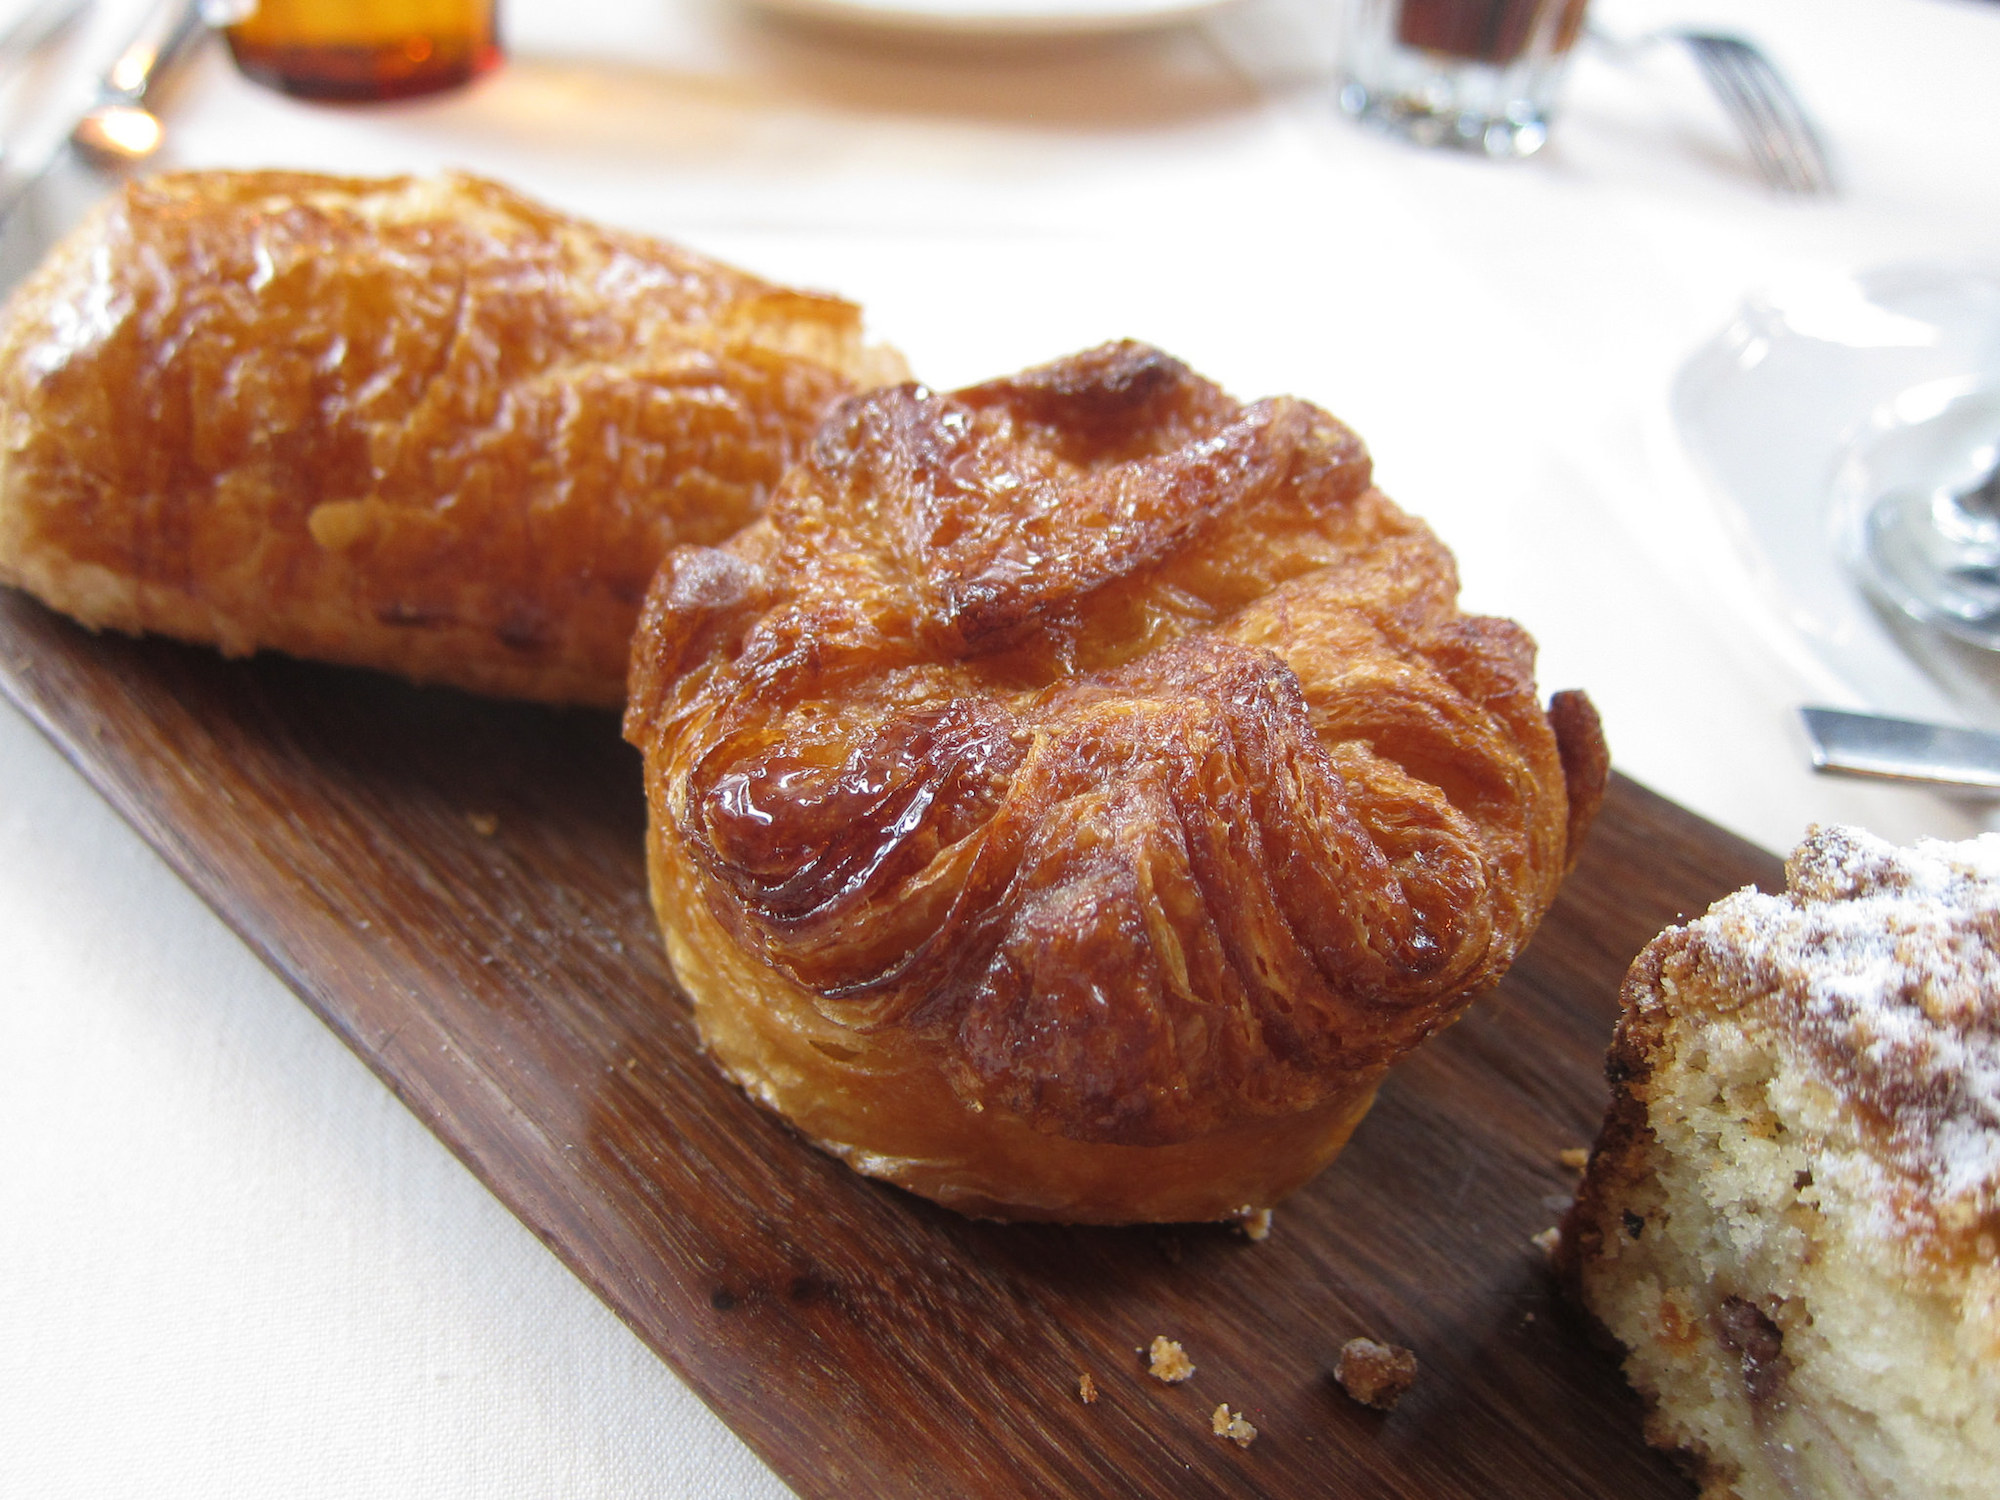 A foodie guide to Brittany's classic pastries and cakes.